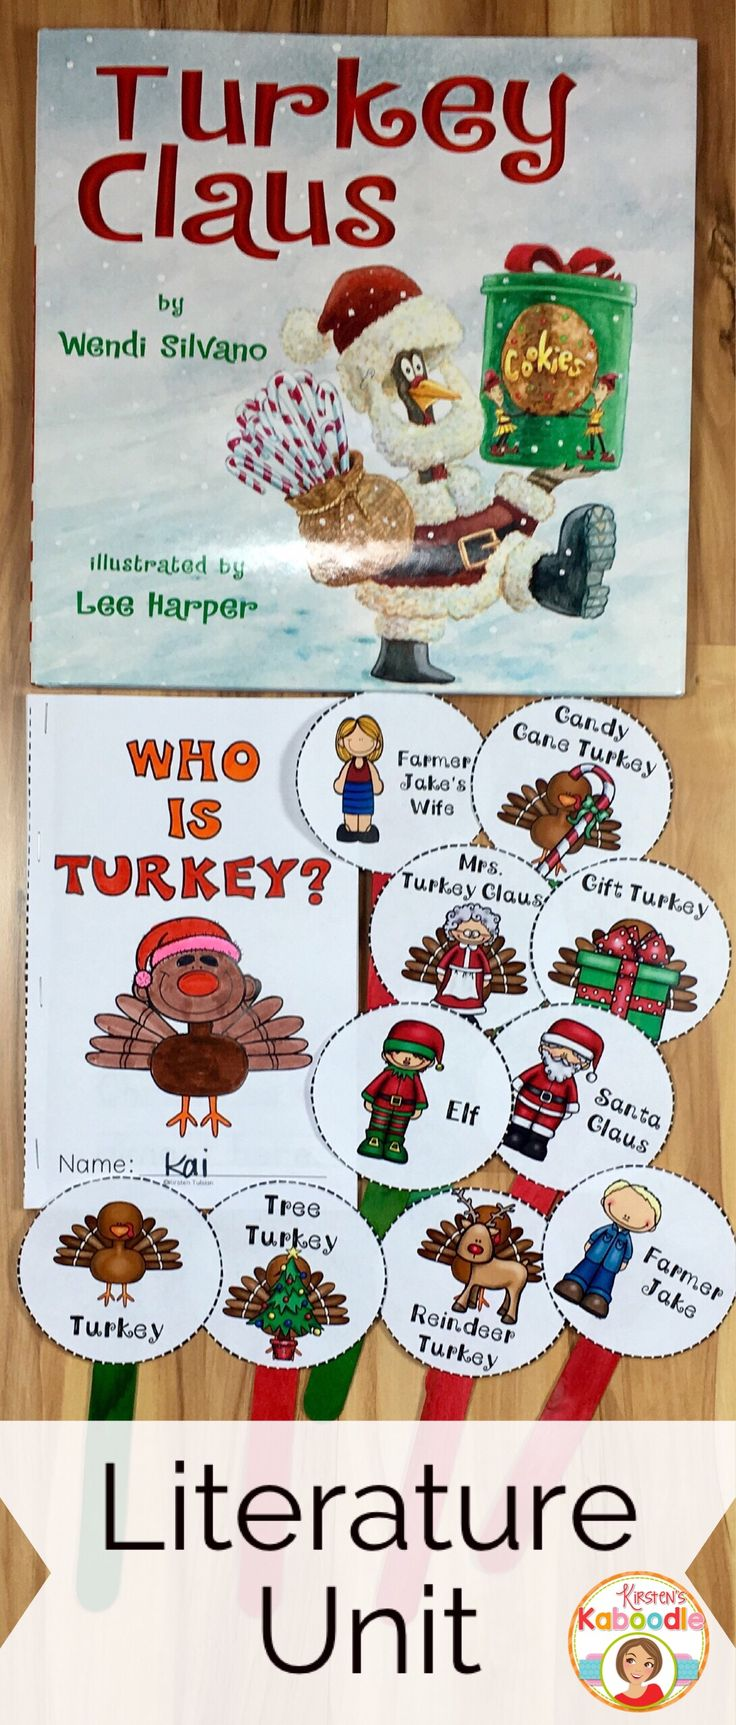 Turkey Claus by Wendi Silvano is a sweet picture book about the shenanigans of a silly turkey at Christmas time. This literature unit is full of fun activities including retelling sticks, a mini-book, and many language arts activities that are common core aligned for kindergarten, 1st, and 2nd grade. Student approved and teacher friendly, you are sure to fall in love with this unit!